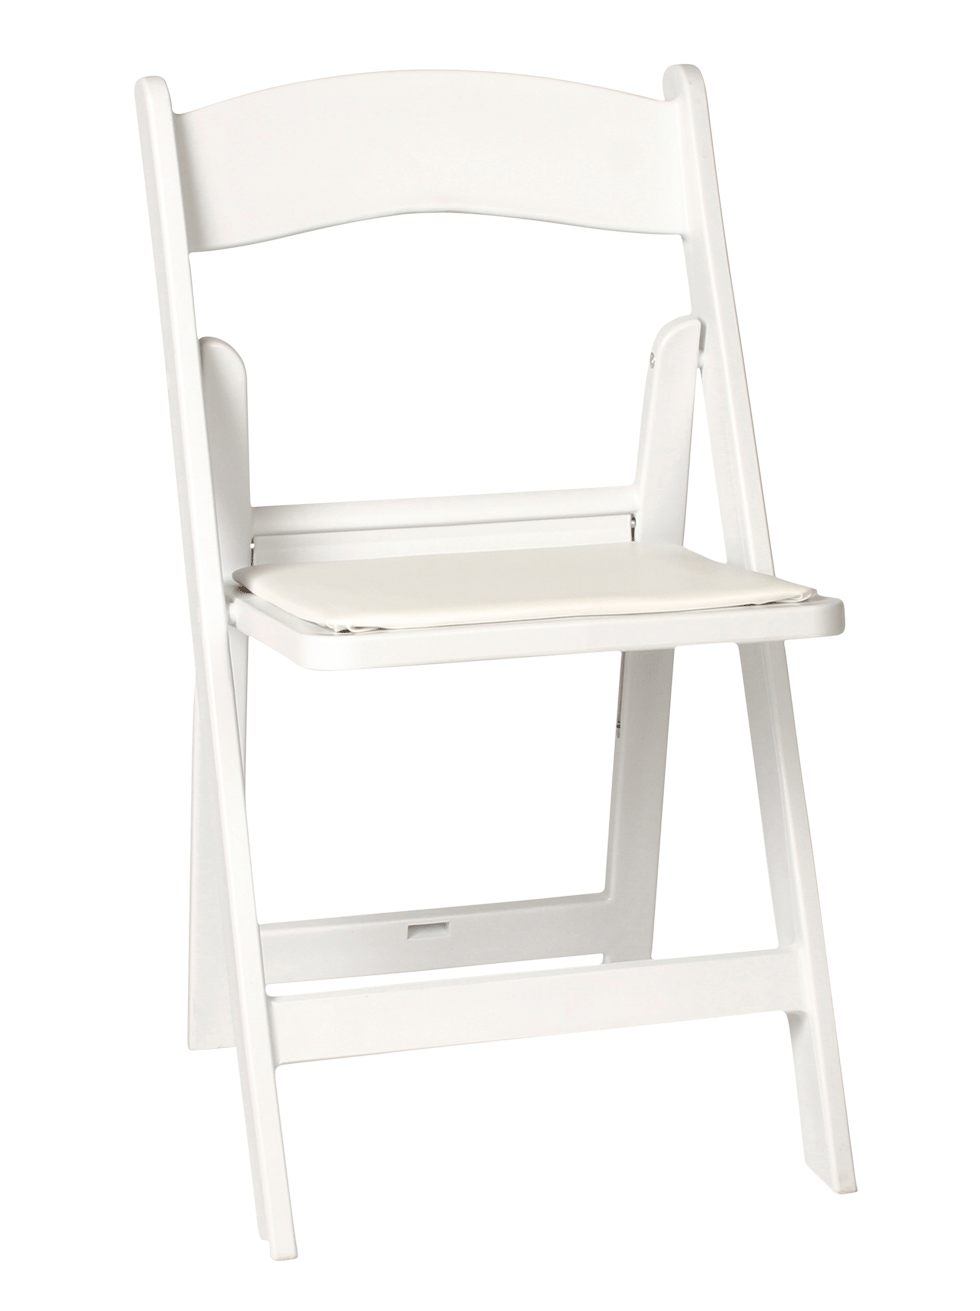 Resin White Folding Chair Rental Bright Rentals